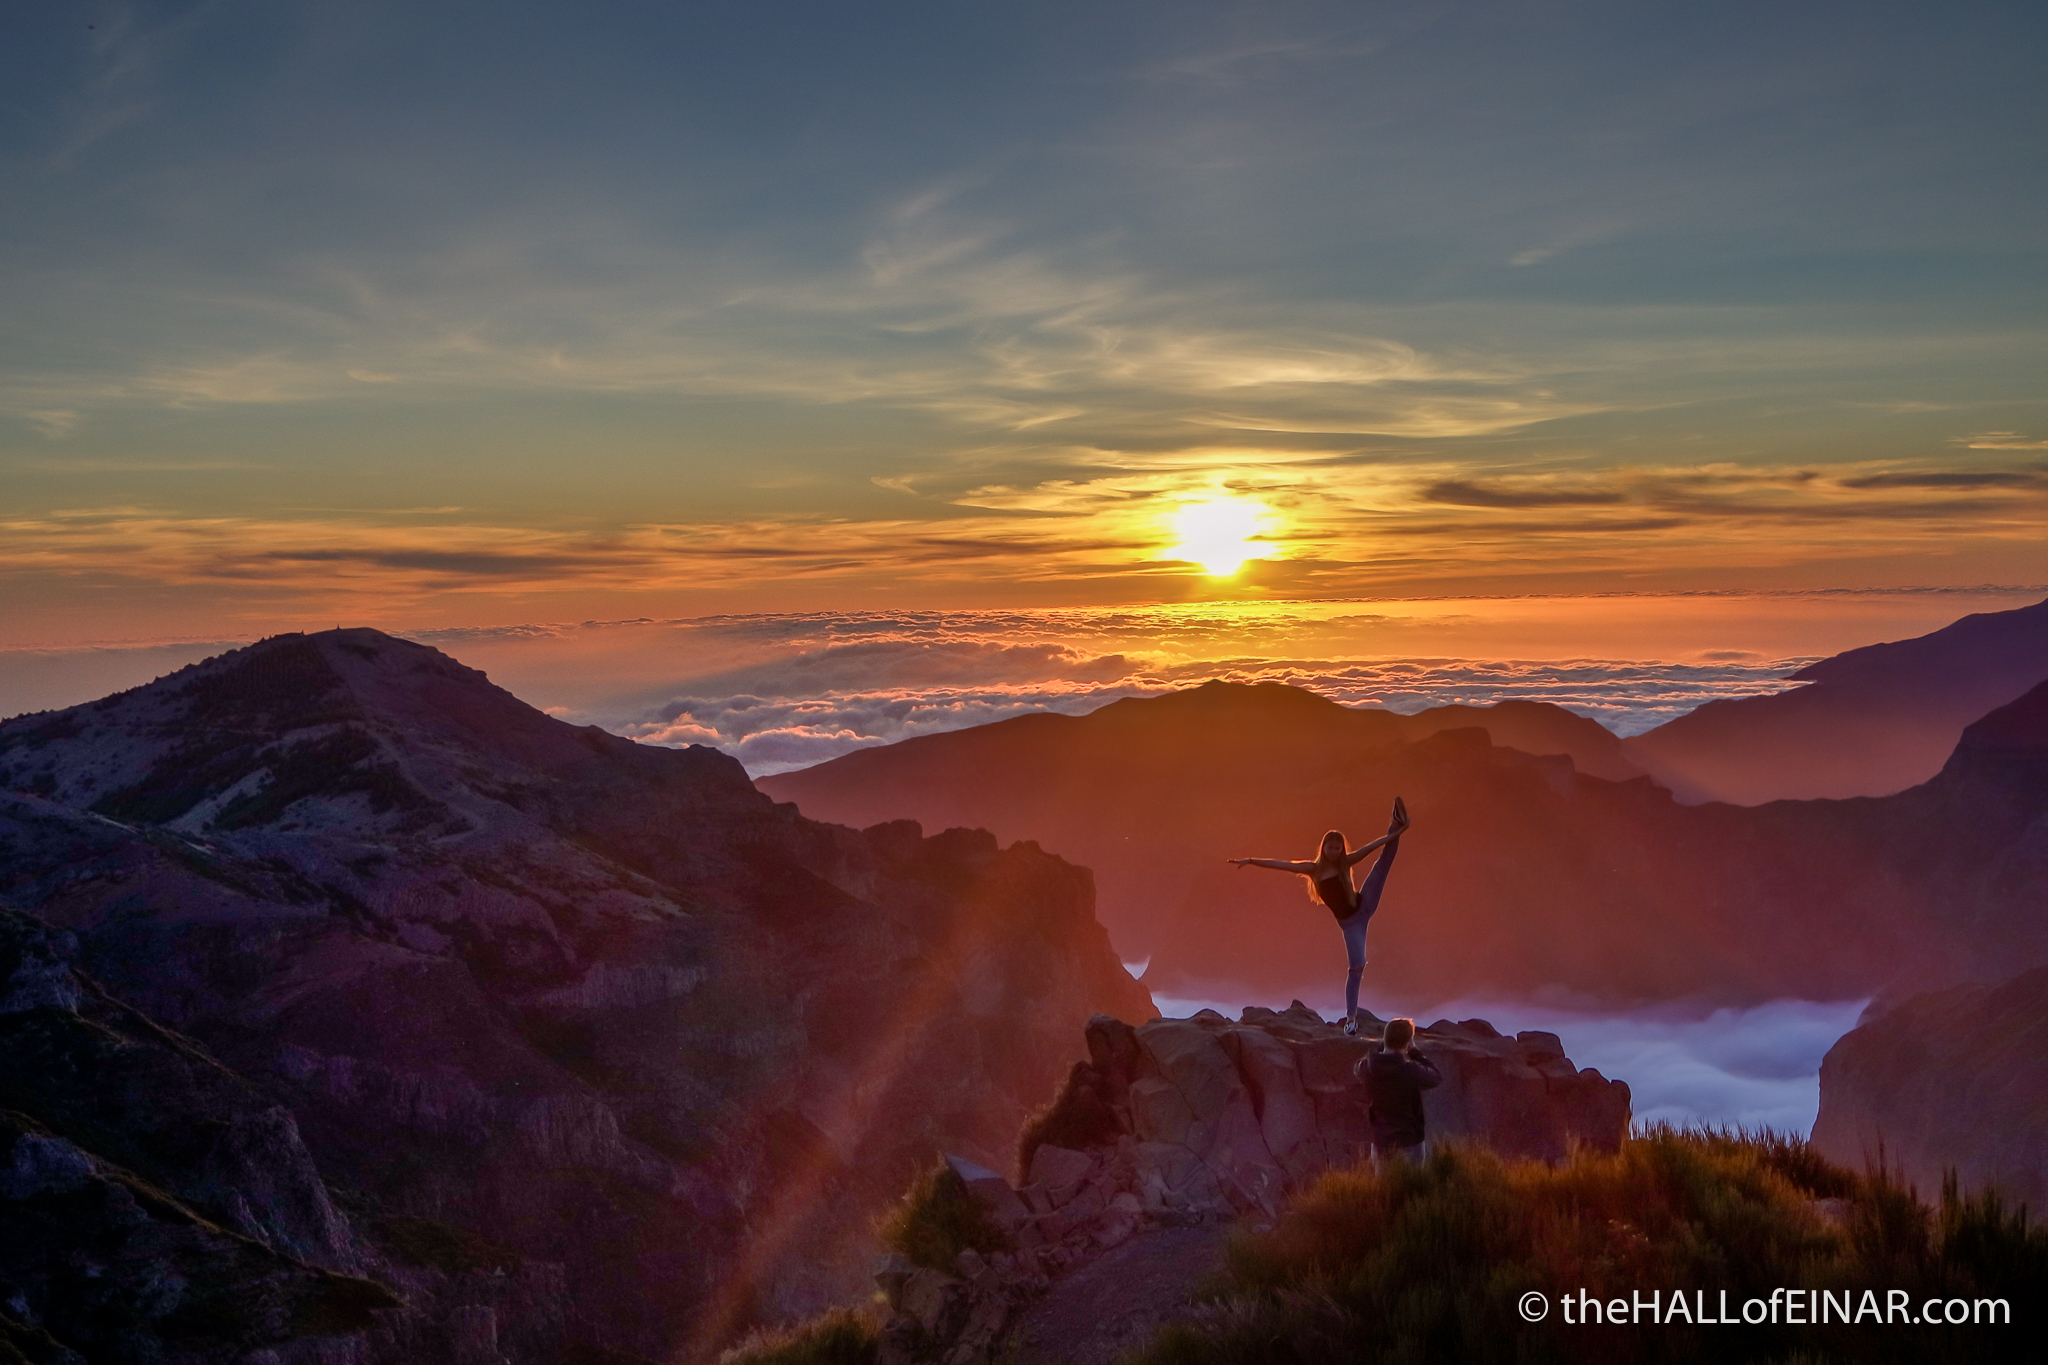 'The colours are spectacular high above the clouds. The final few Instagram image seekers are still here. She has to try several wobbly times before she nails it. I'd love to see what his photograph of her was like.' From today's blog. @Madeira https://t.co/2sKZrUM4sv